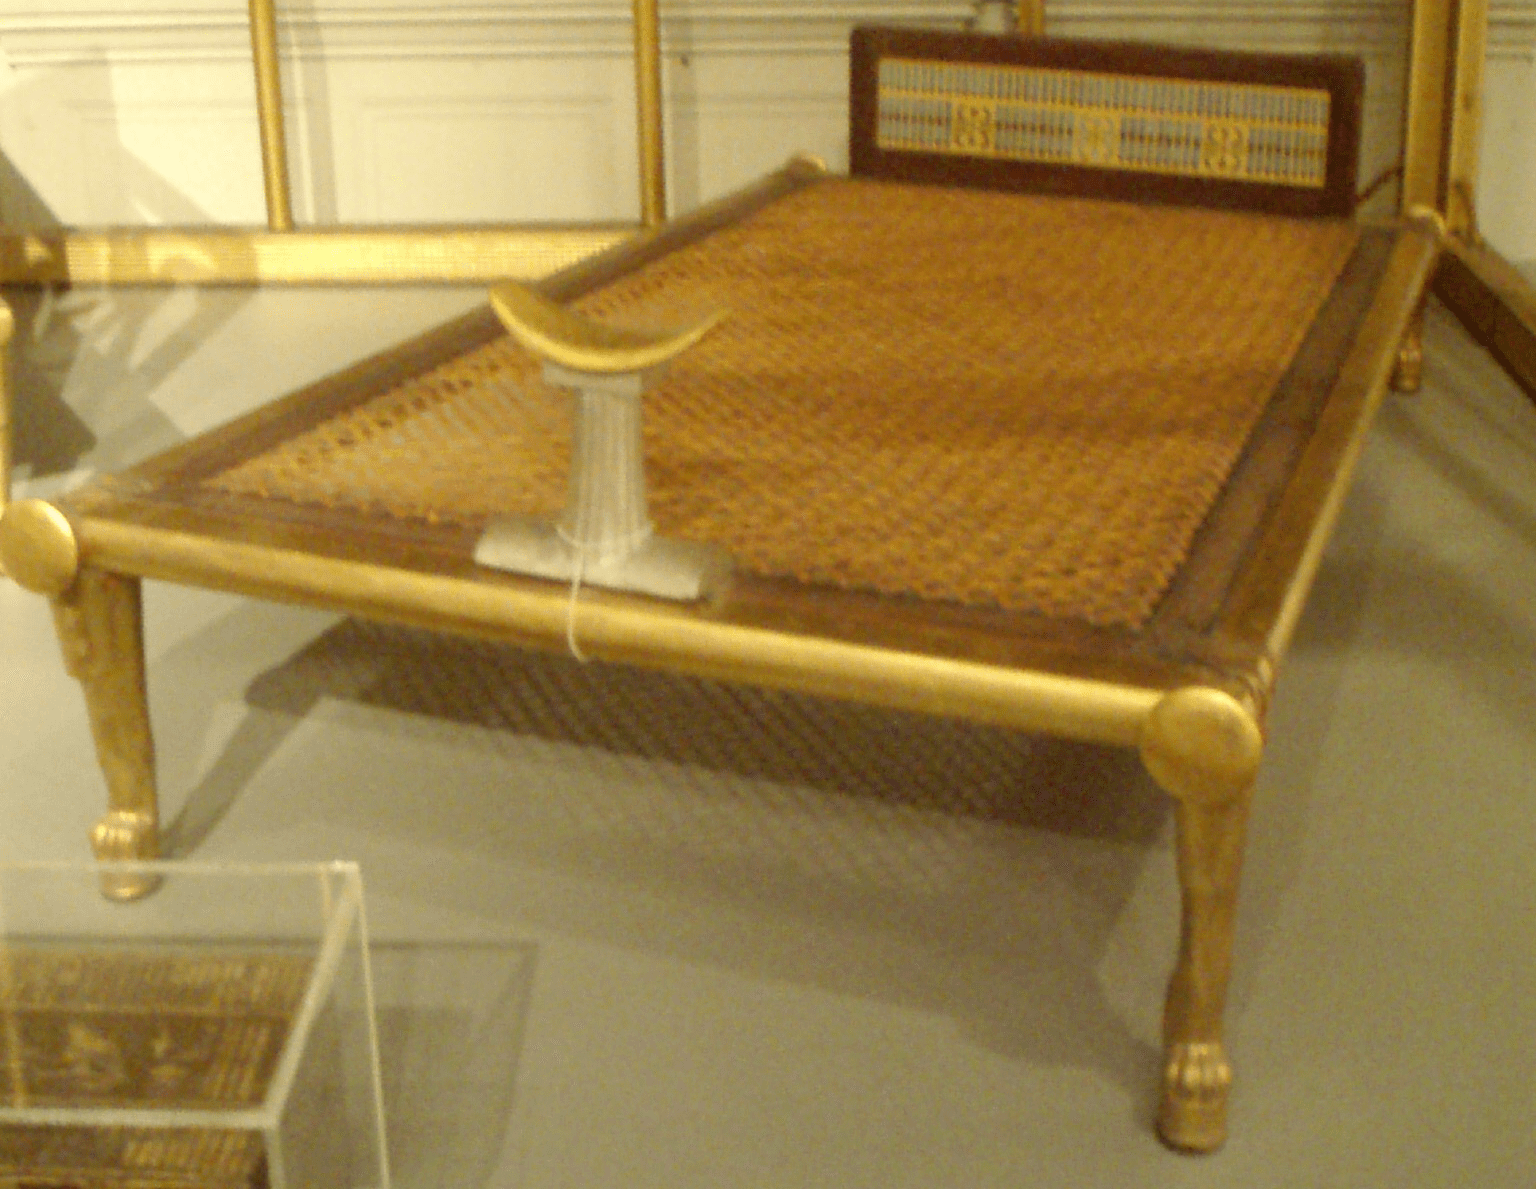 Ancient egyptian bed with a curved alabaster headrest standing where we would put a pillow